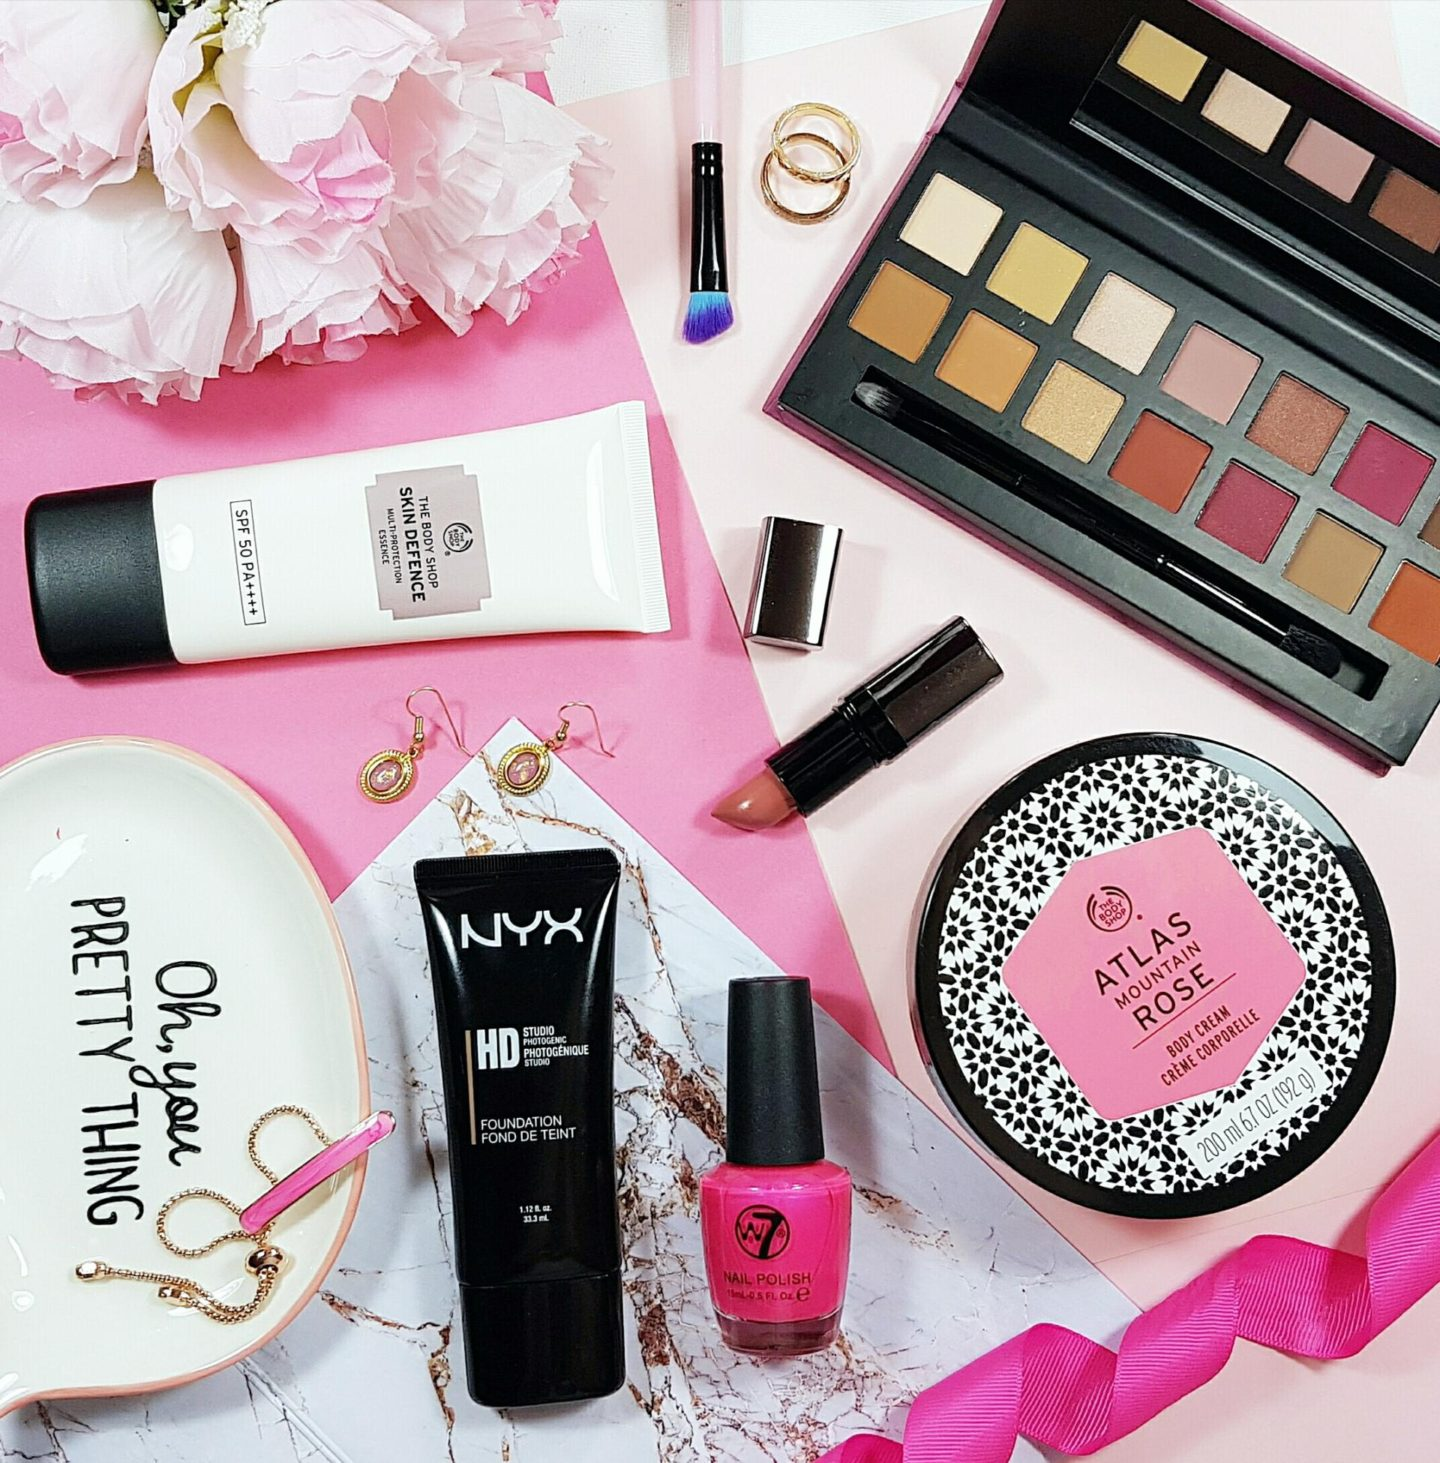 Beauty and makeup products I've loved using this month